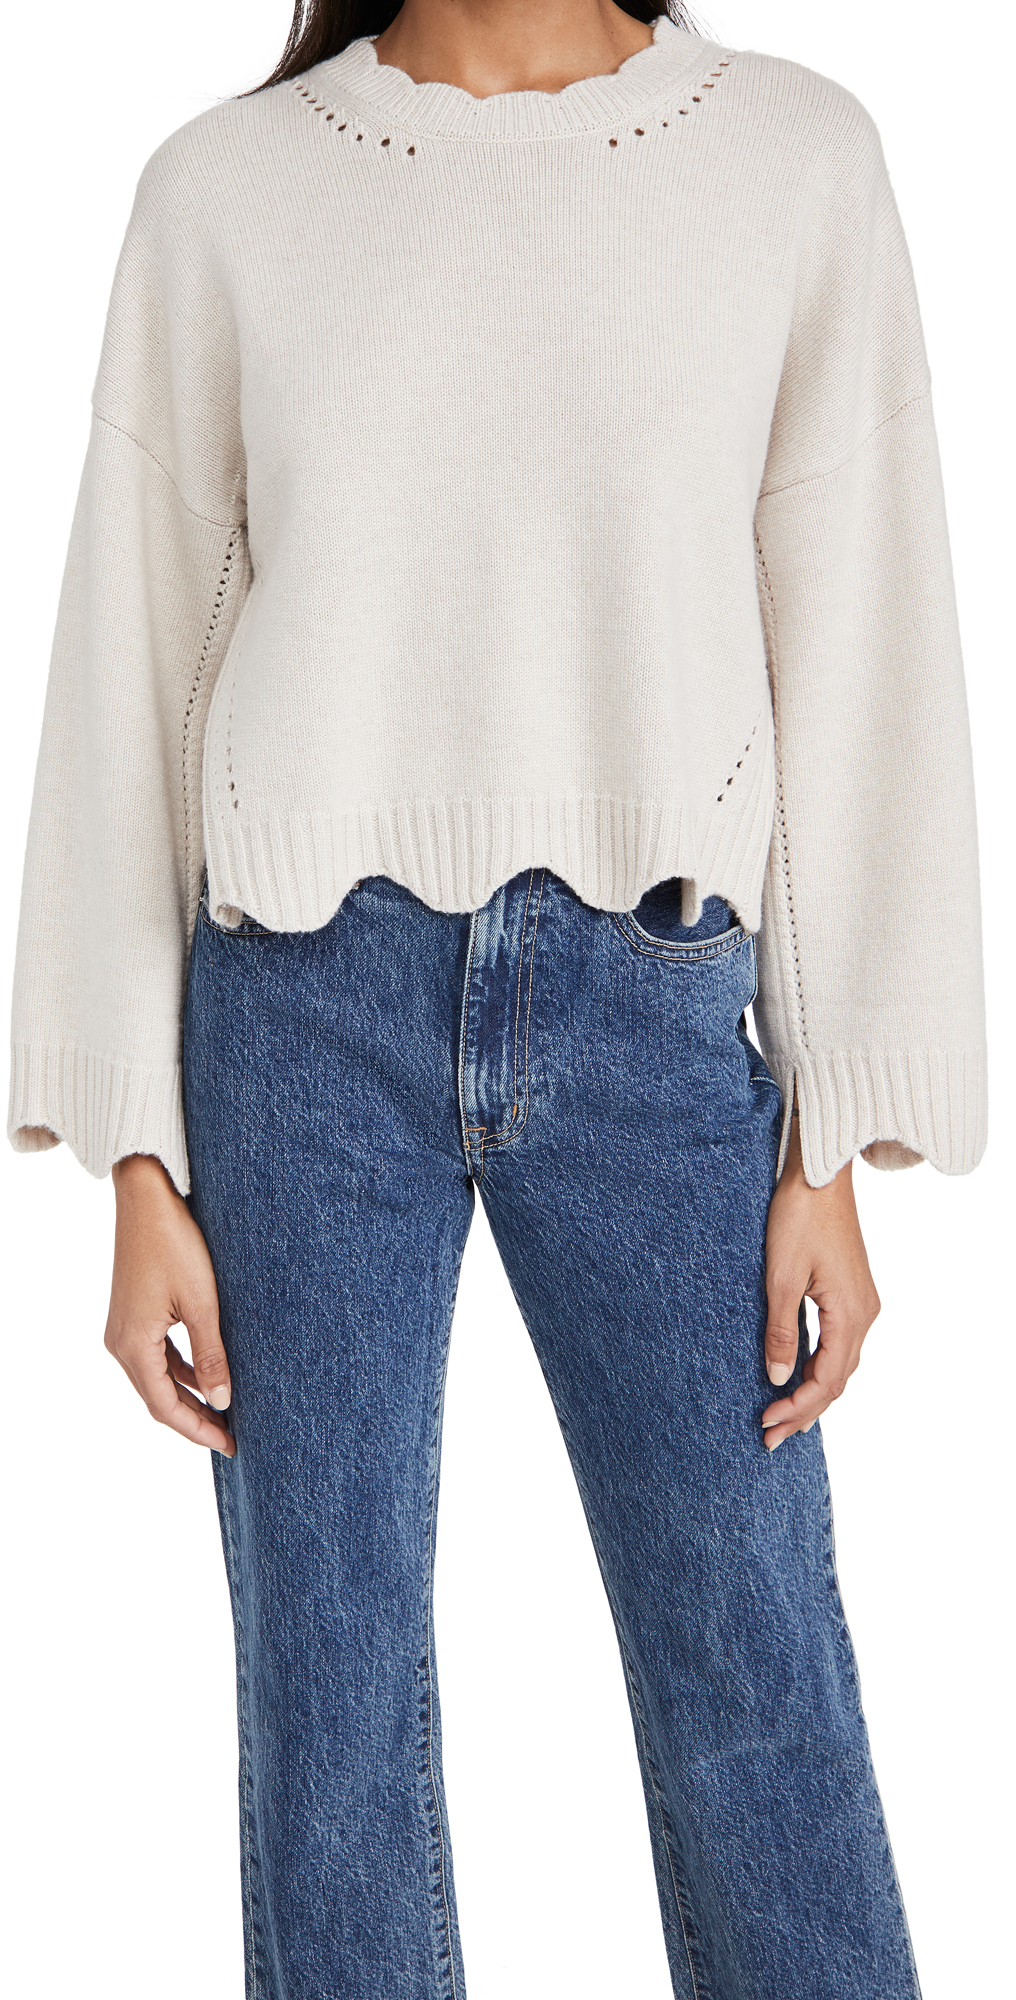 3.1 Phillip Lim Crew Neck Cashmere Blend Sweater